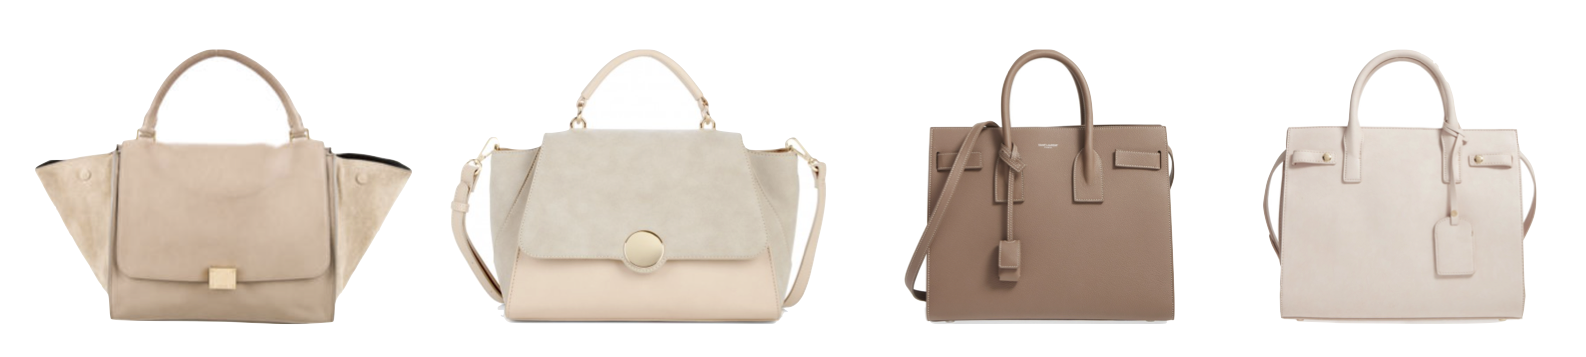 Save vs. Splurge: Handbags...